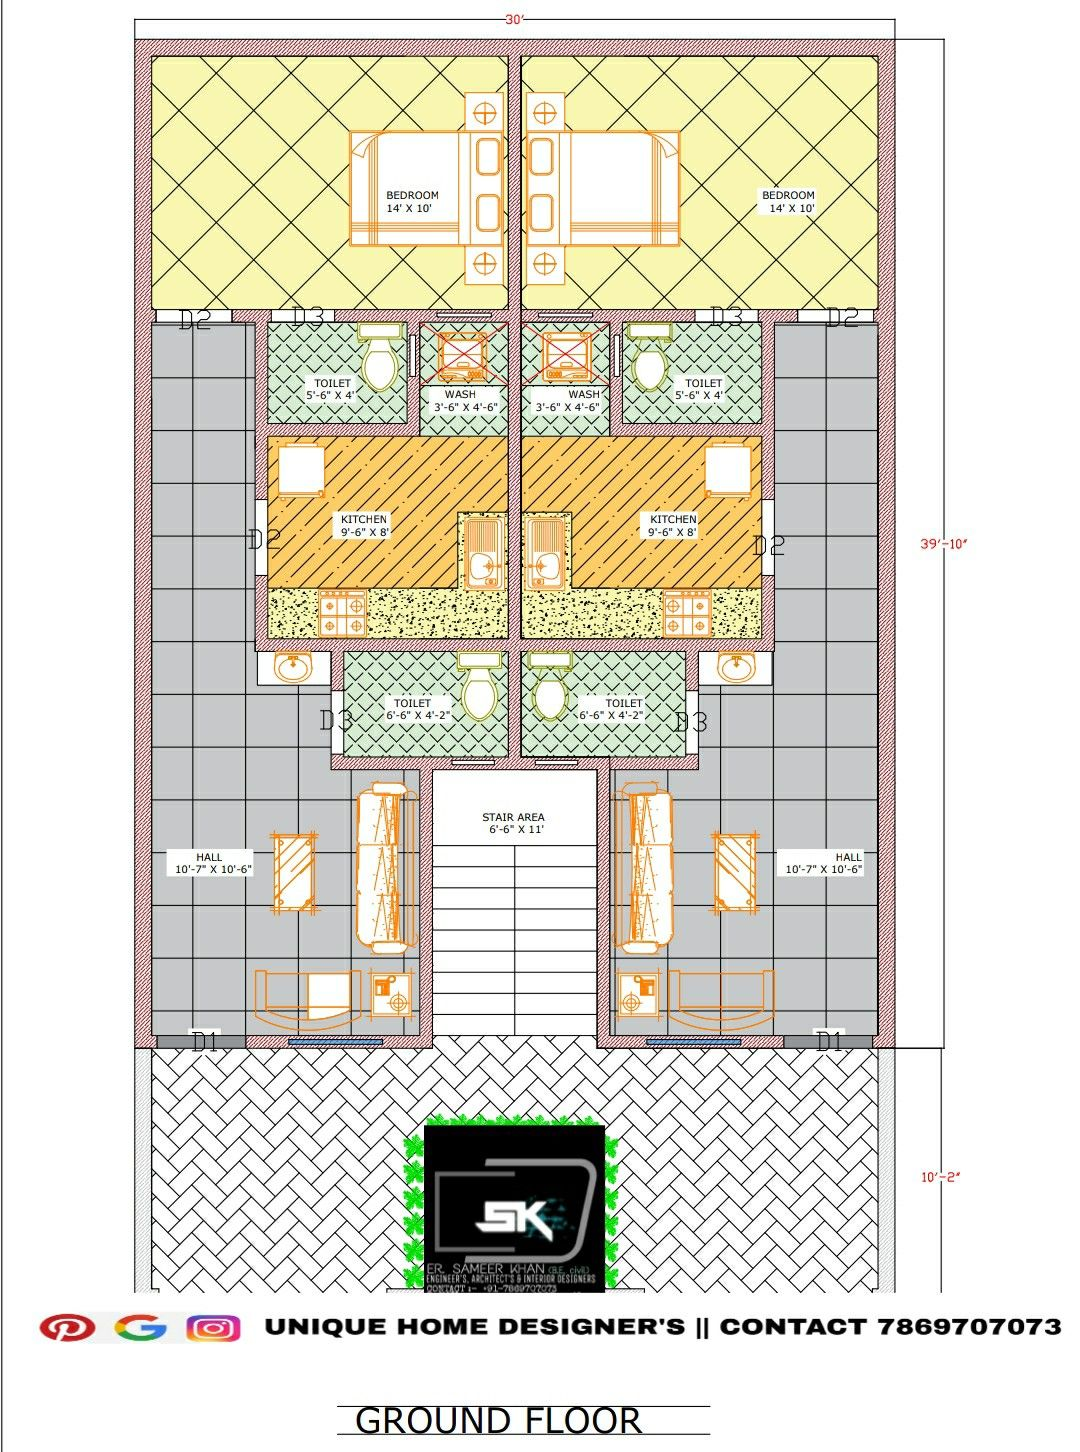 30 X50 House Plan In Two Separate Unit In India Unique House Design Indian House Plans House Plans